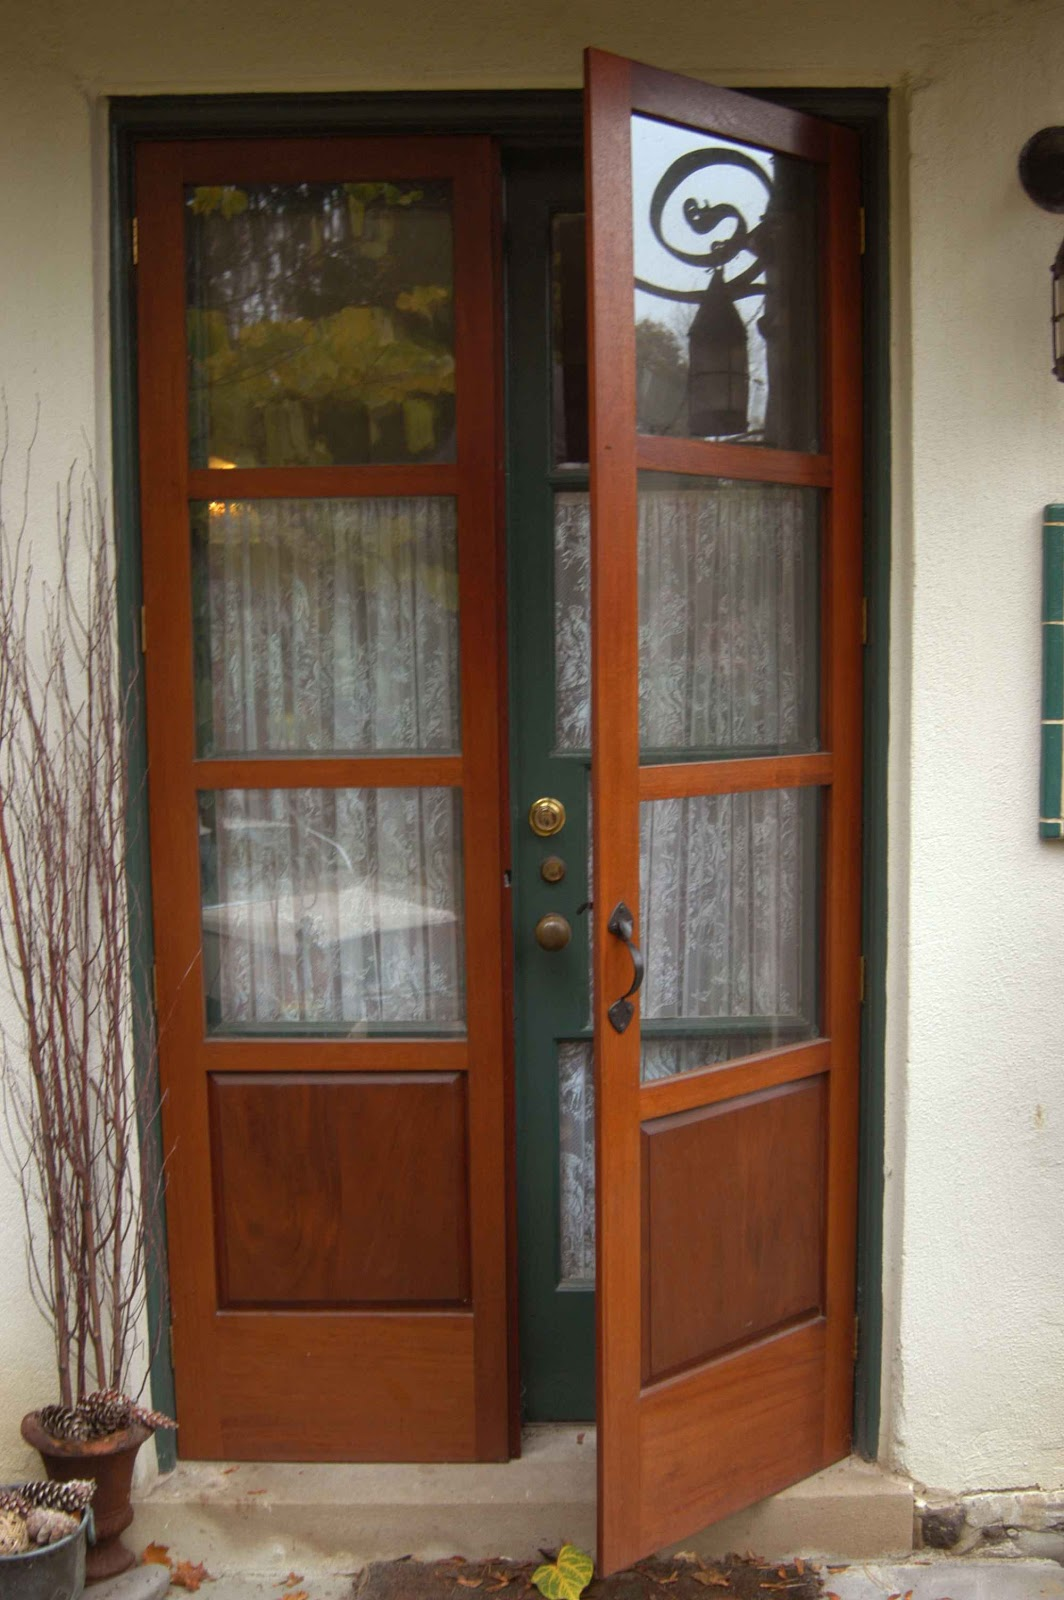 Our French Inspired Home: Exterior French Doors: Which